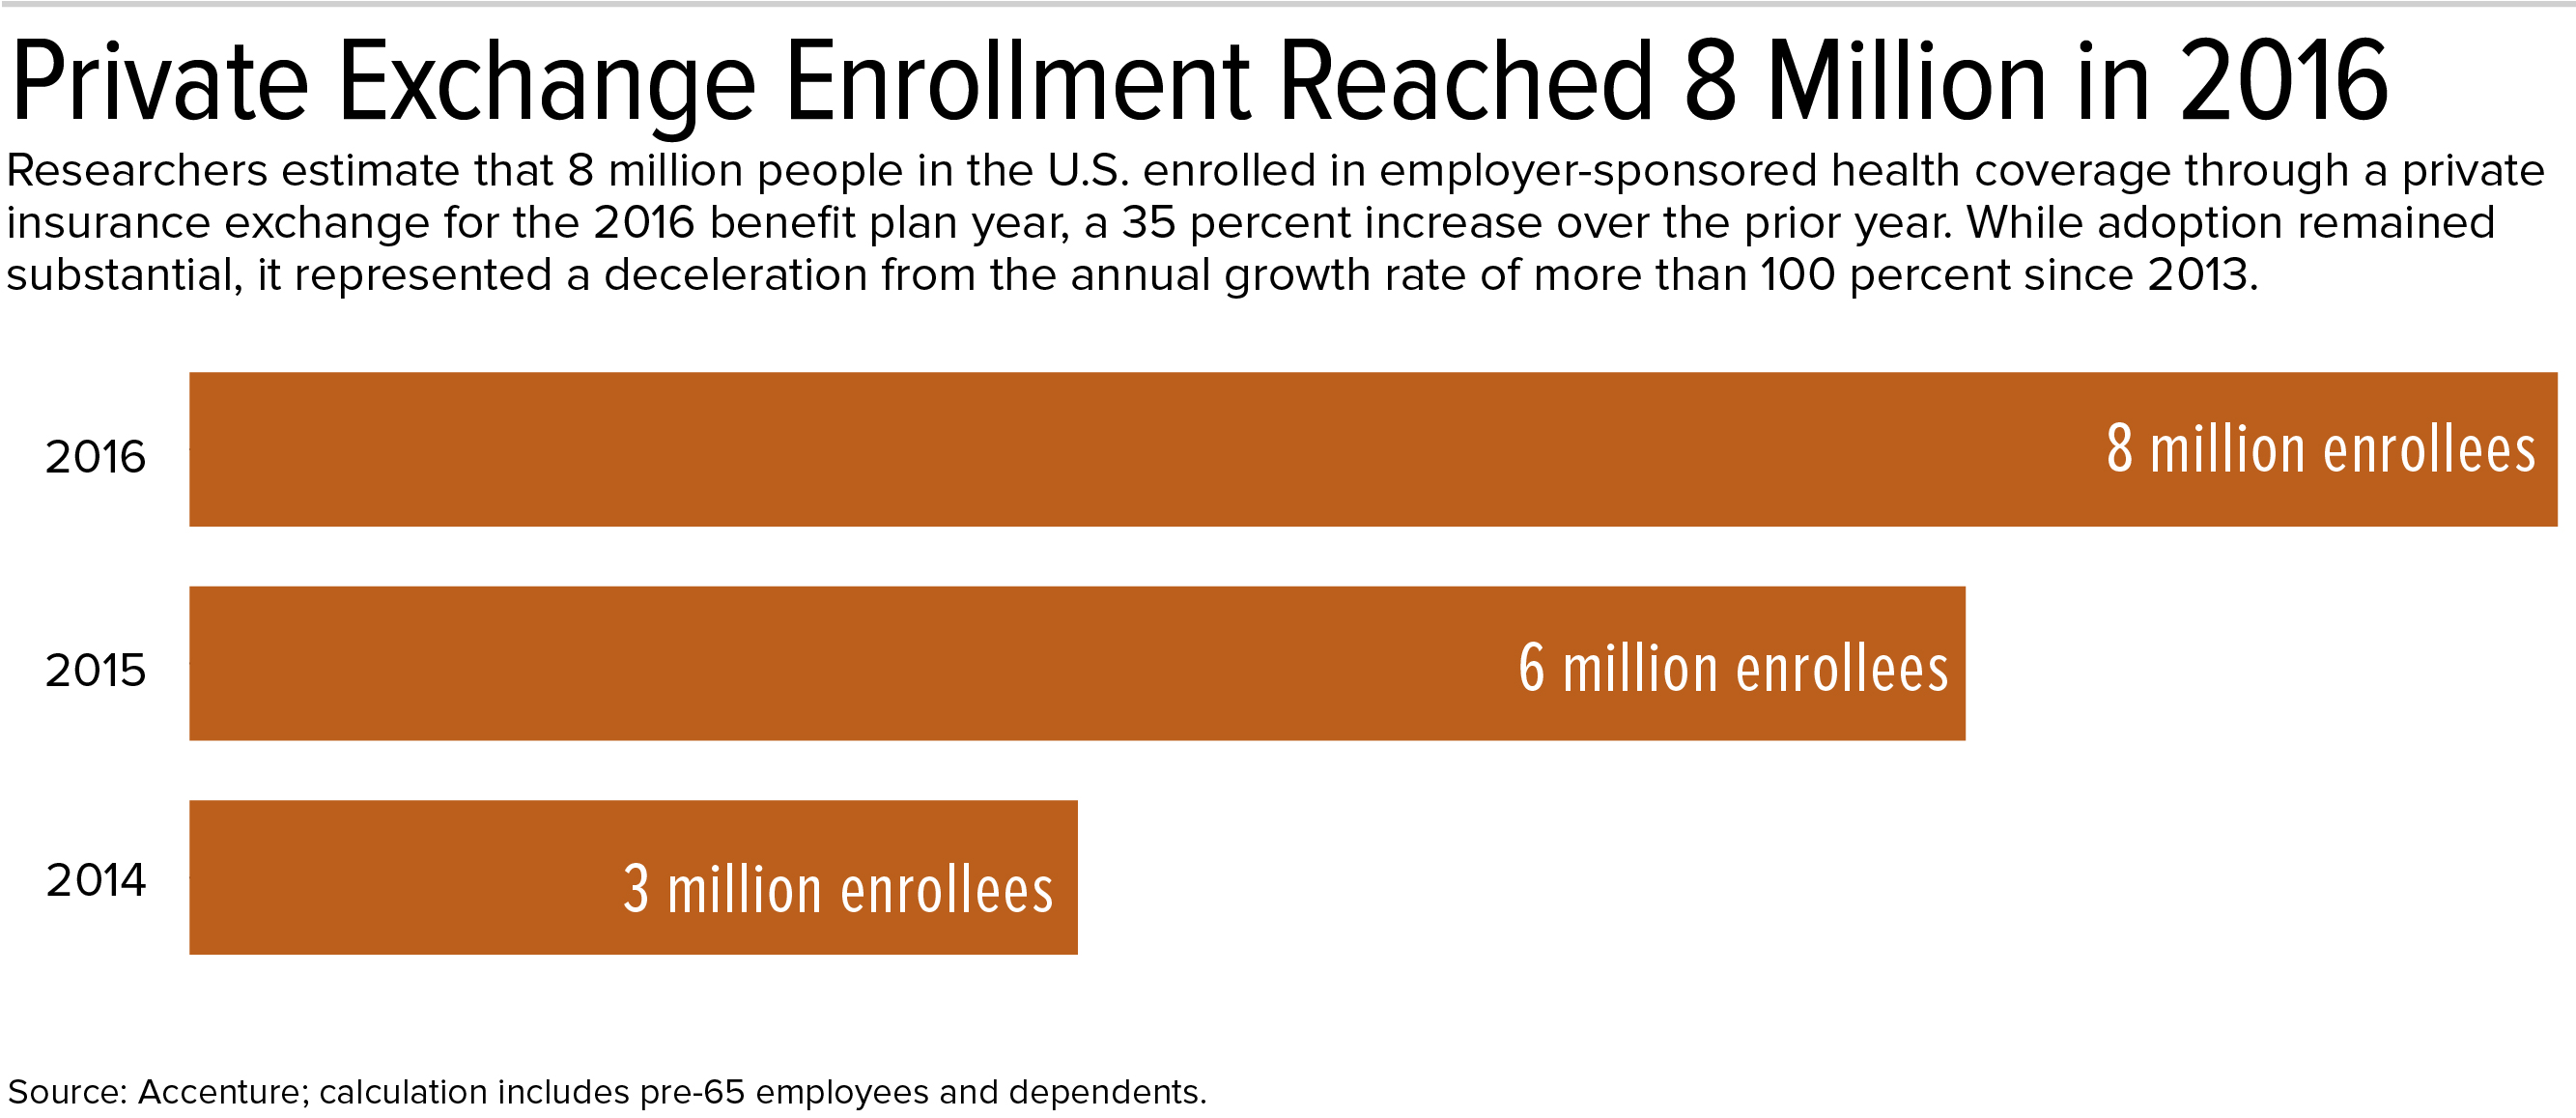 17-1500 Exchange Enrollment.jpg